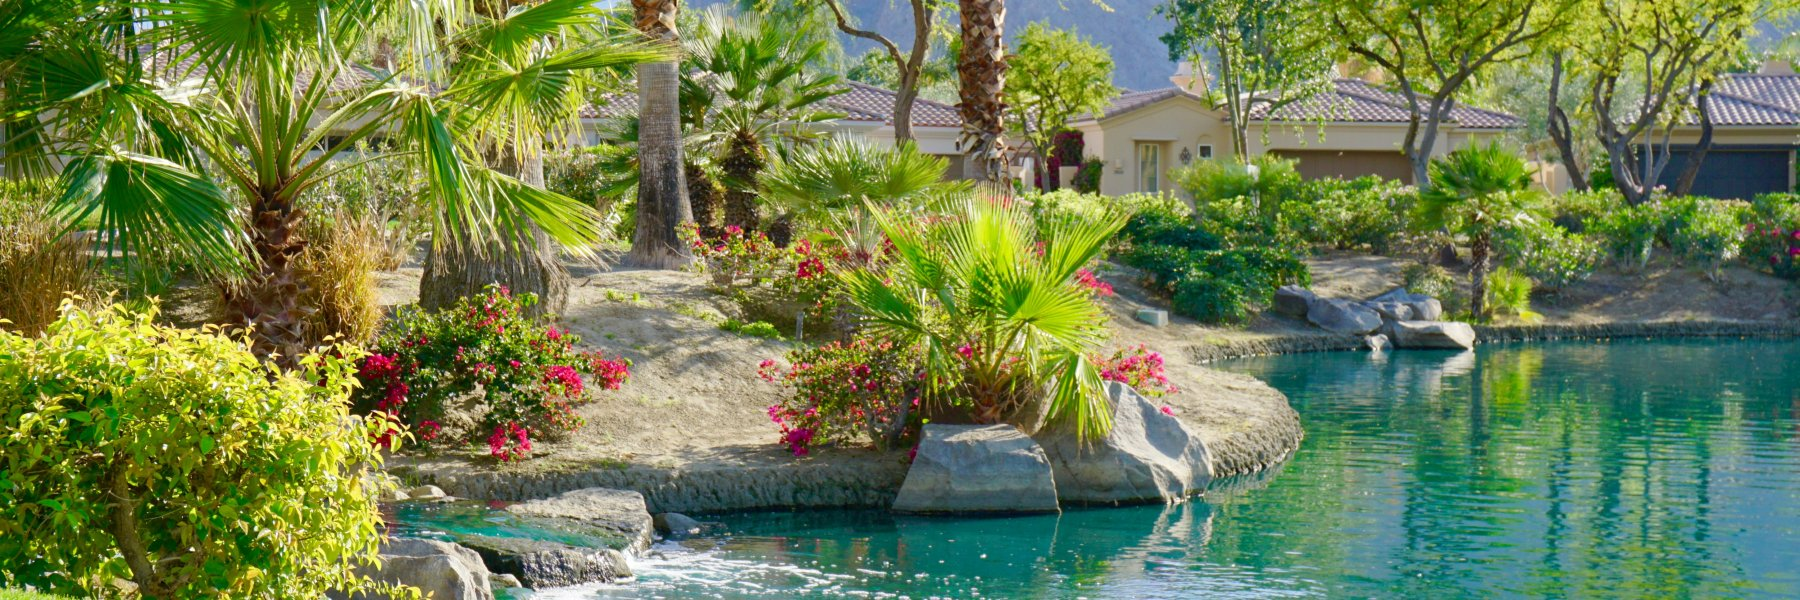 The Citrus is a community of homes in La Quinta California